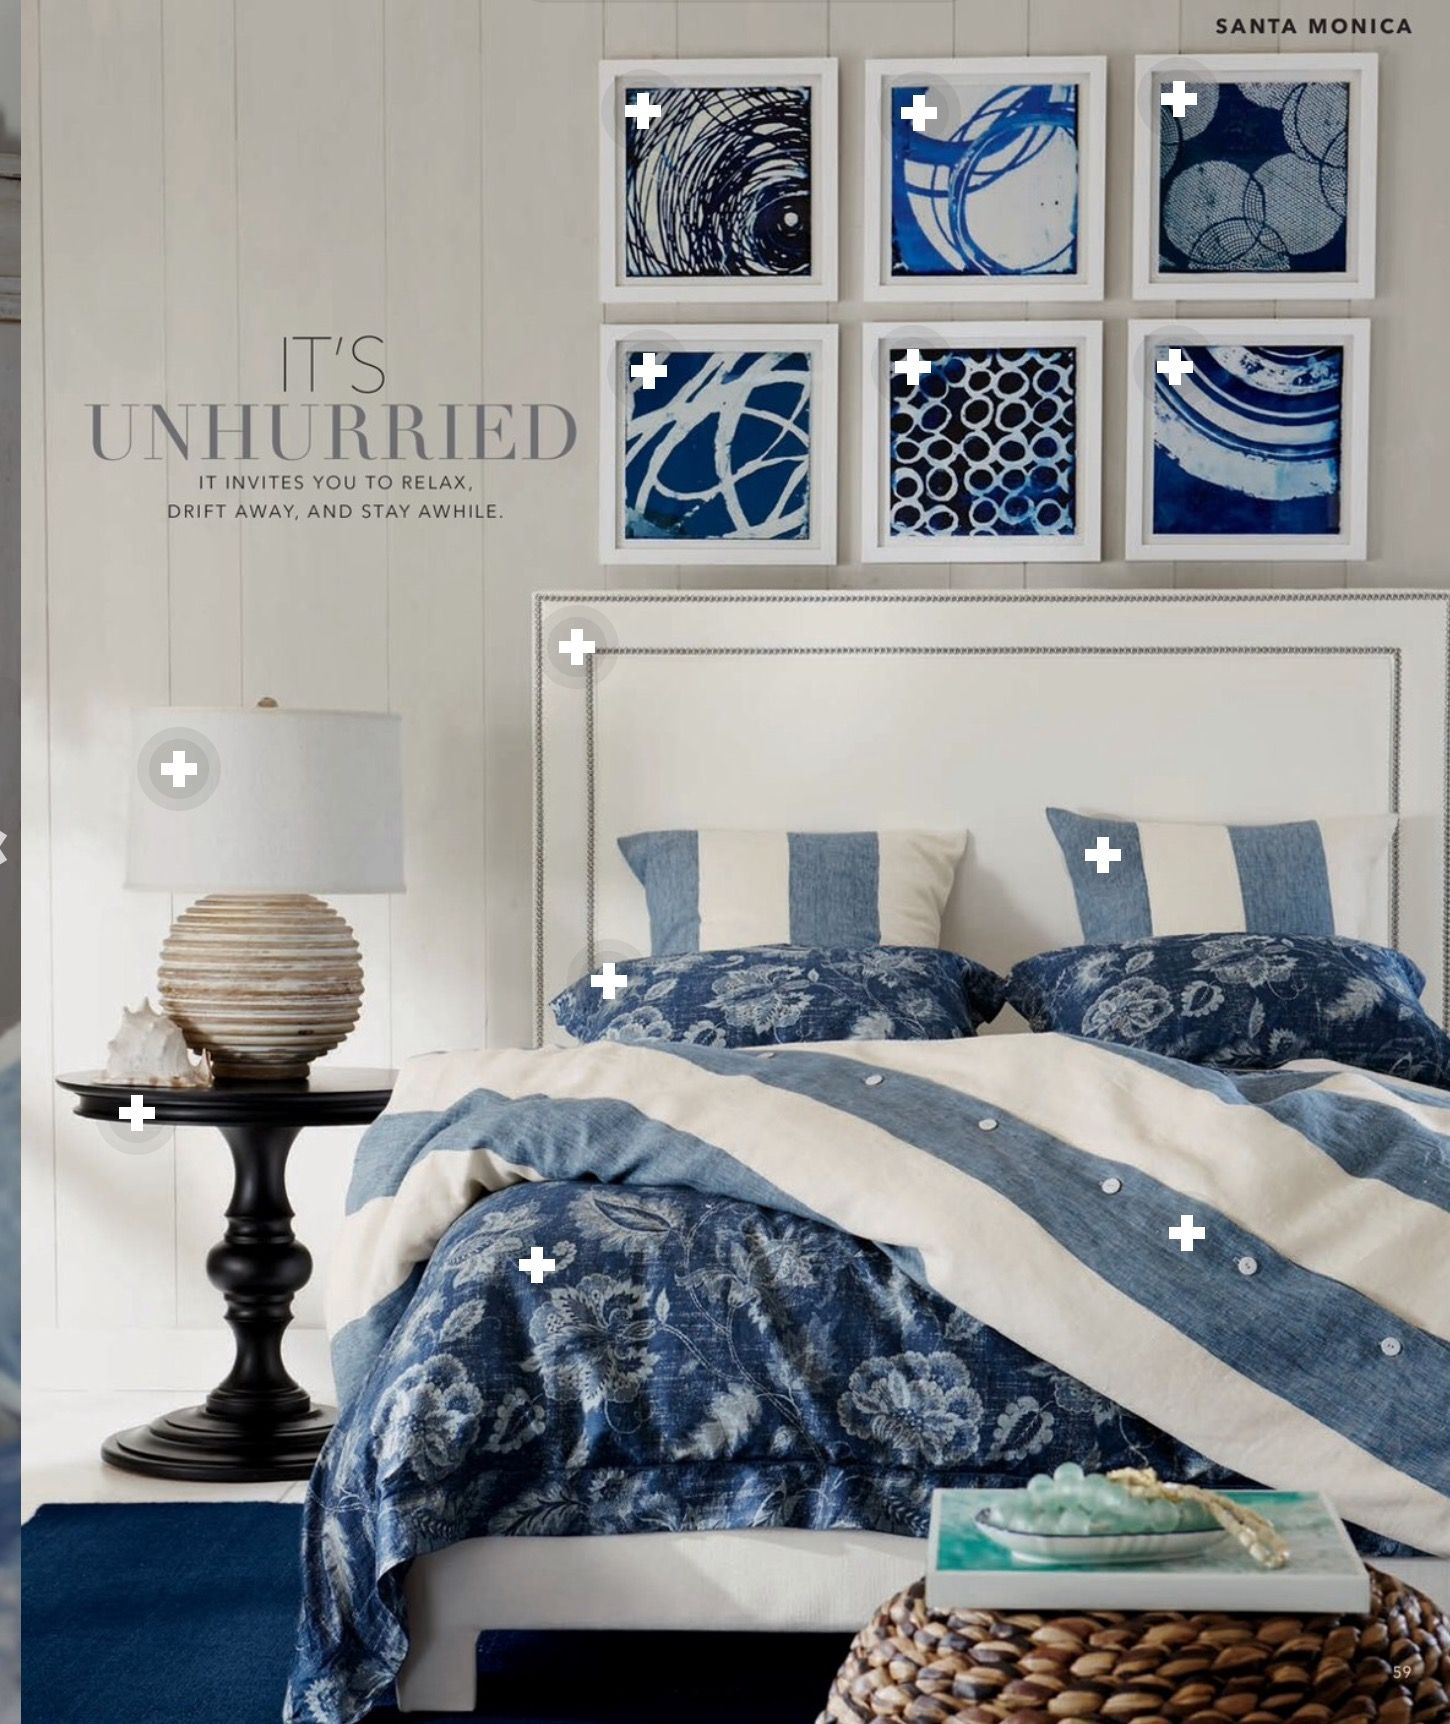 Pin by Anita Colon on Walls !!! Navy white bedrooms